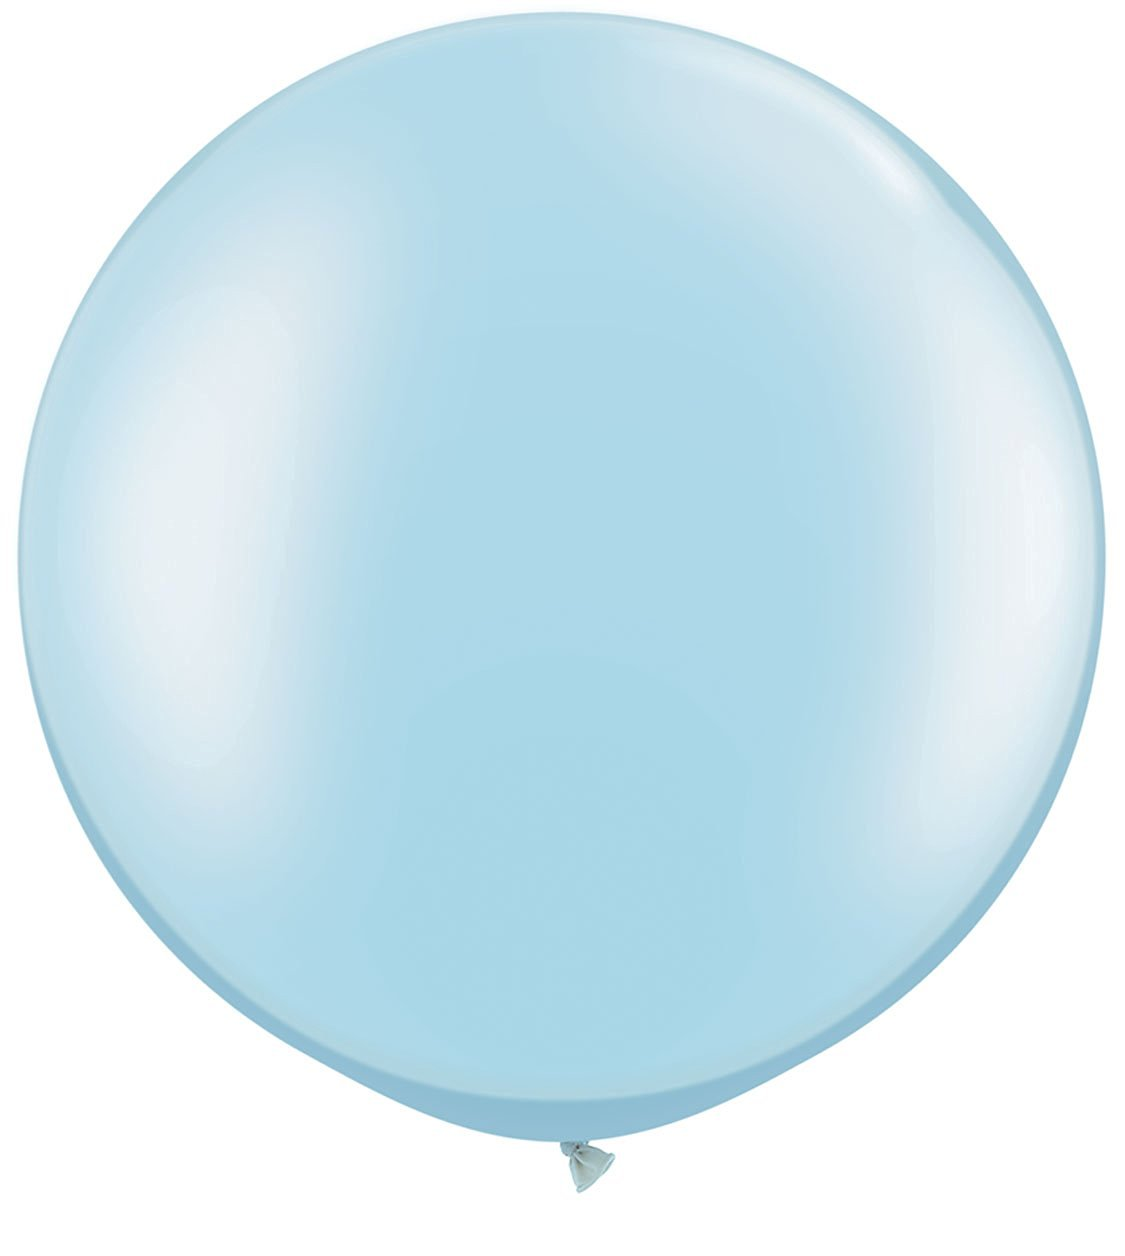 "Pearl Light Blue 30"" Giant Qualatex Latex Balloons x 2"